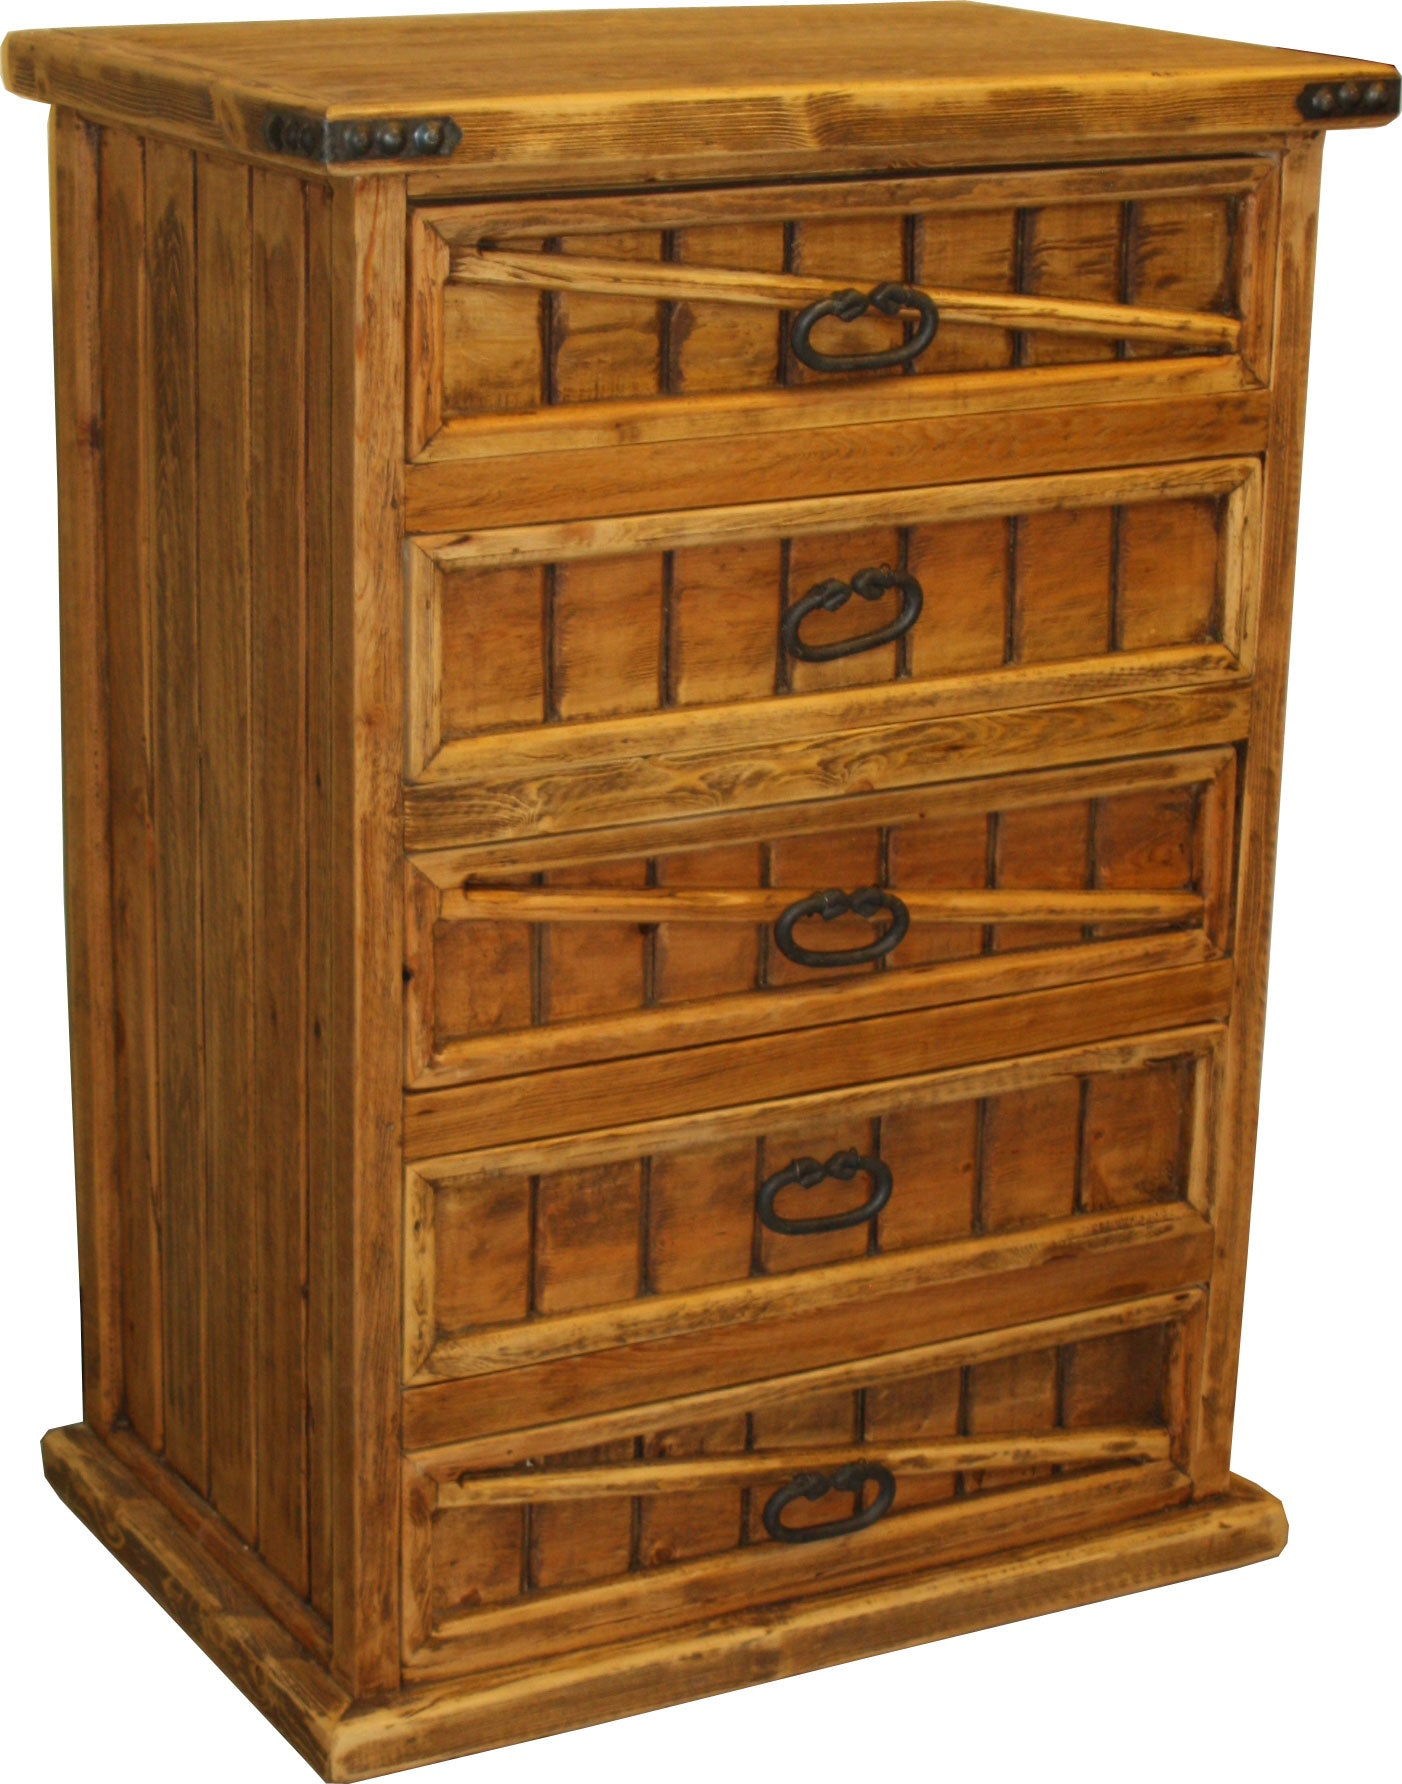 Hacienda Vertical Dresser